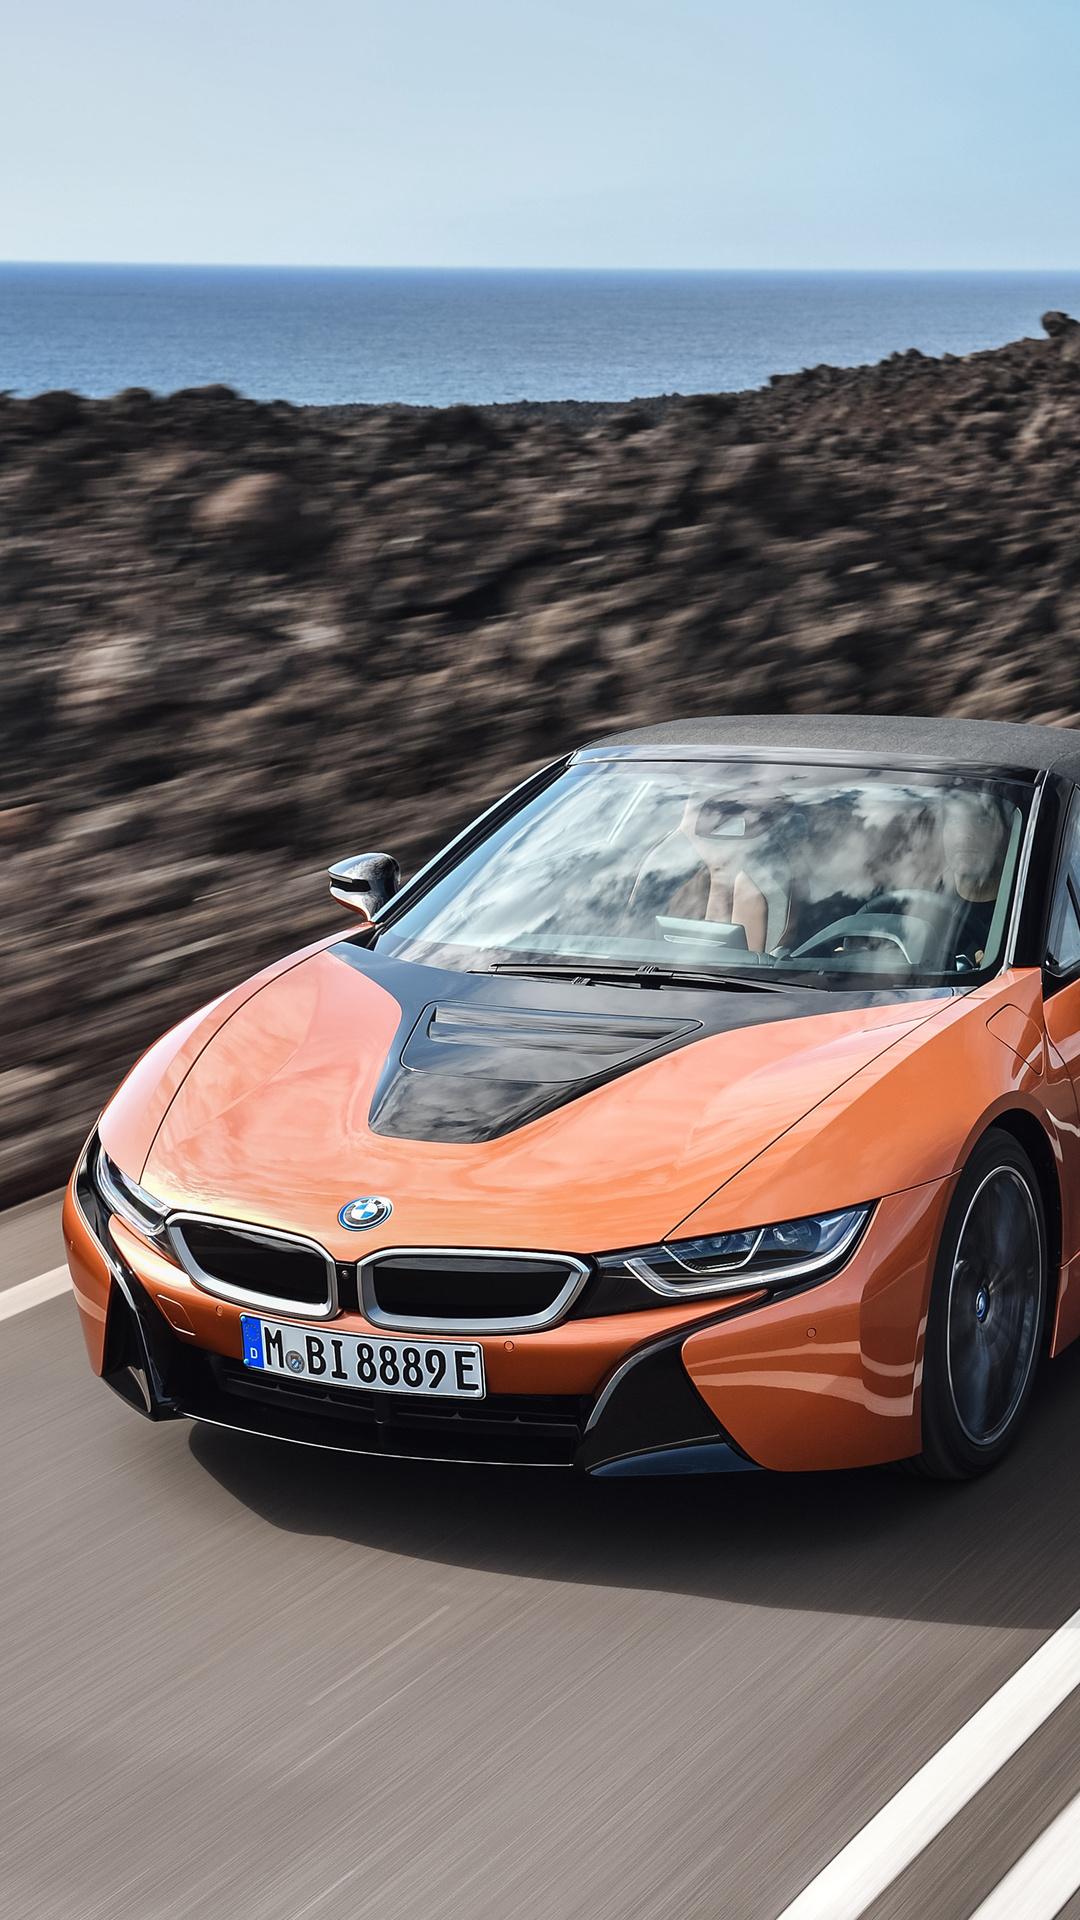 1080x1920 Bmw I8 Roadster Iphone 7 6s 6 Plus Pixel Xl One Plus 3